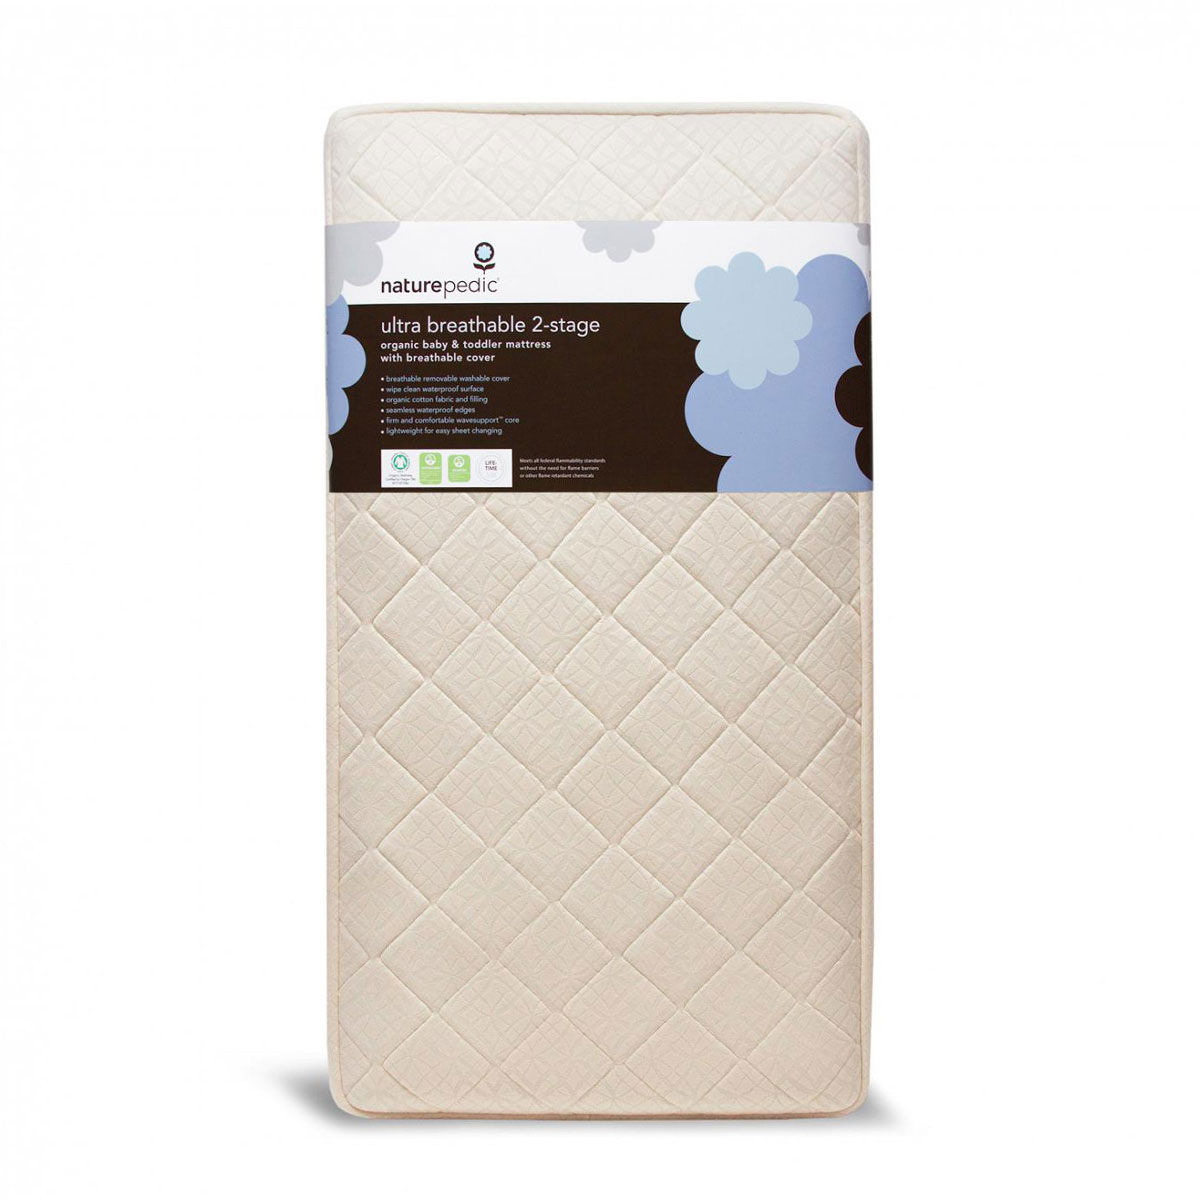 Naturepedic Ultra Breathable 2 Stage Mattress